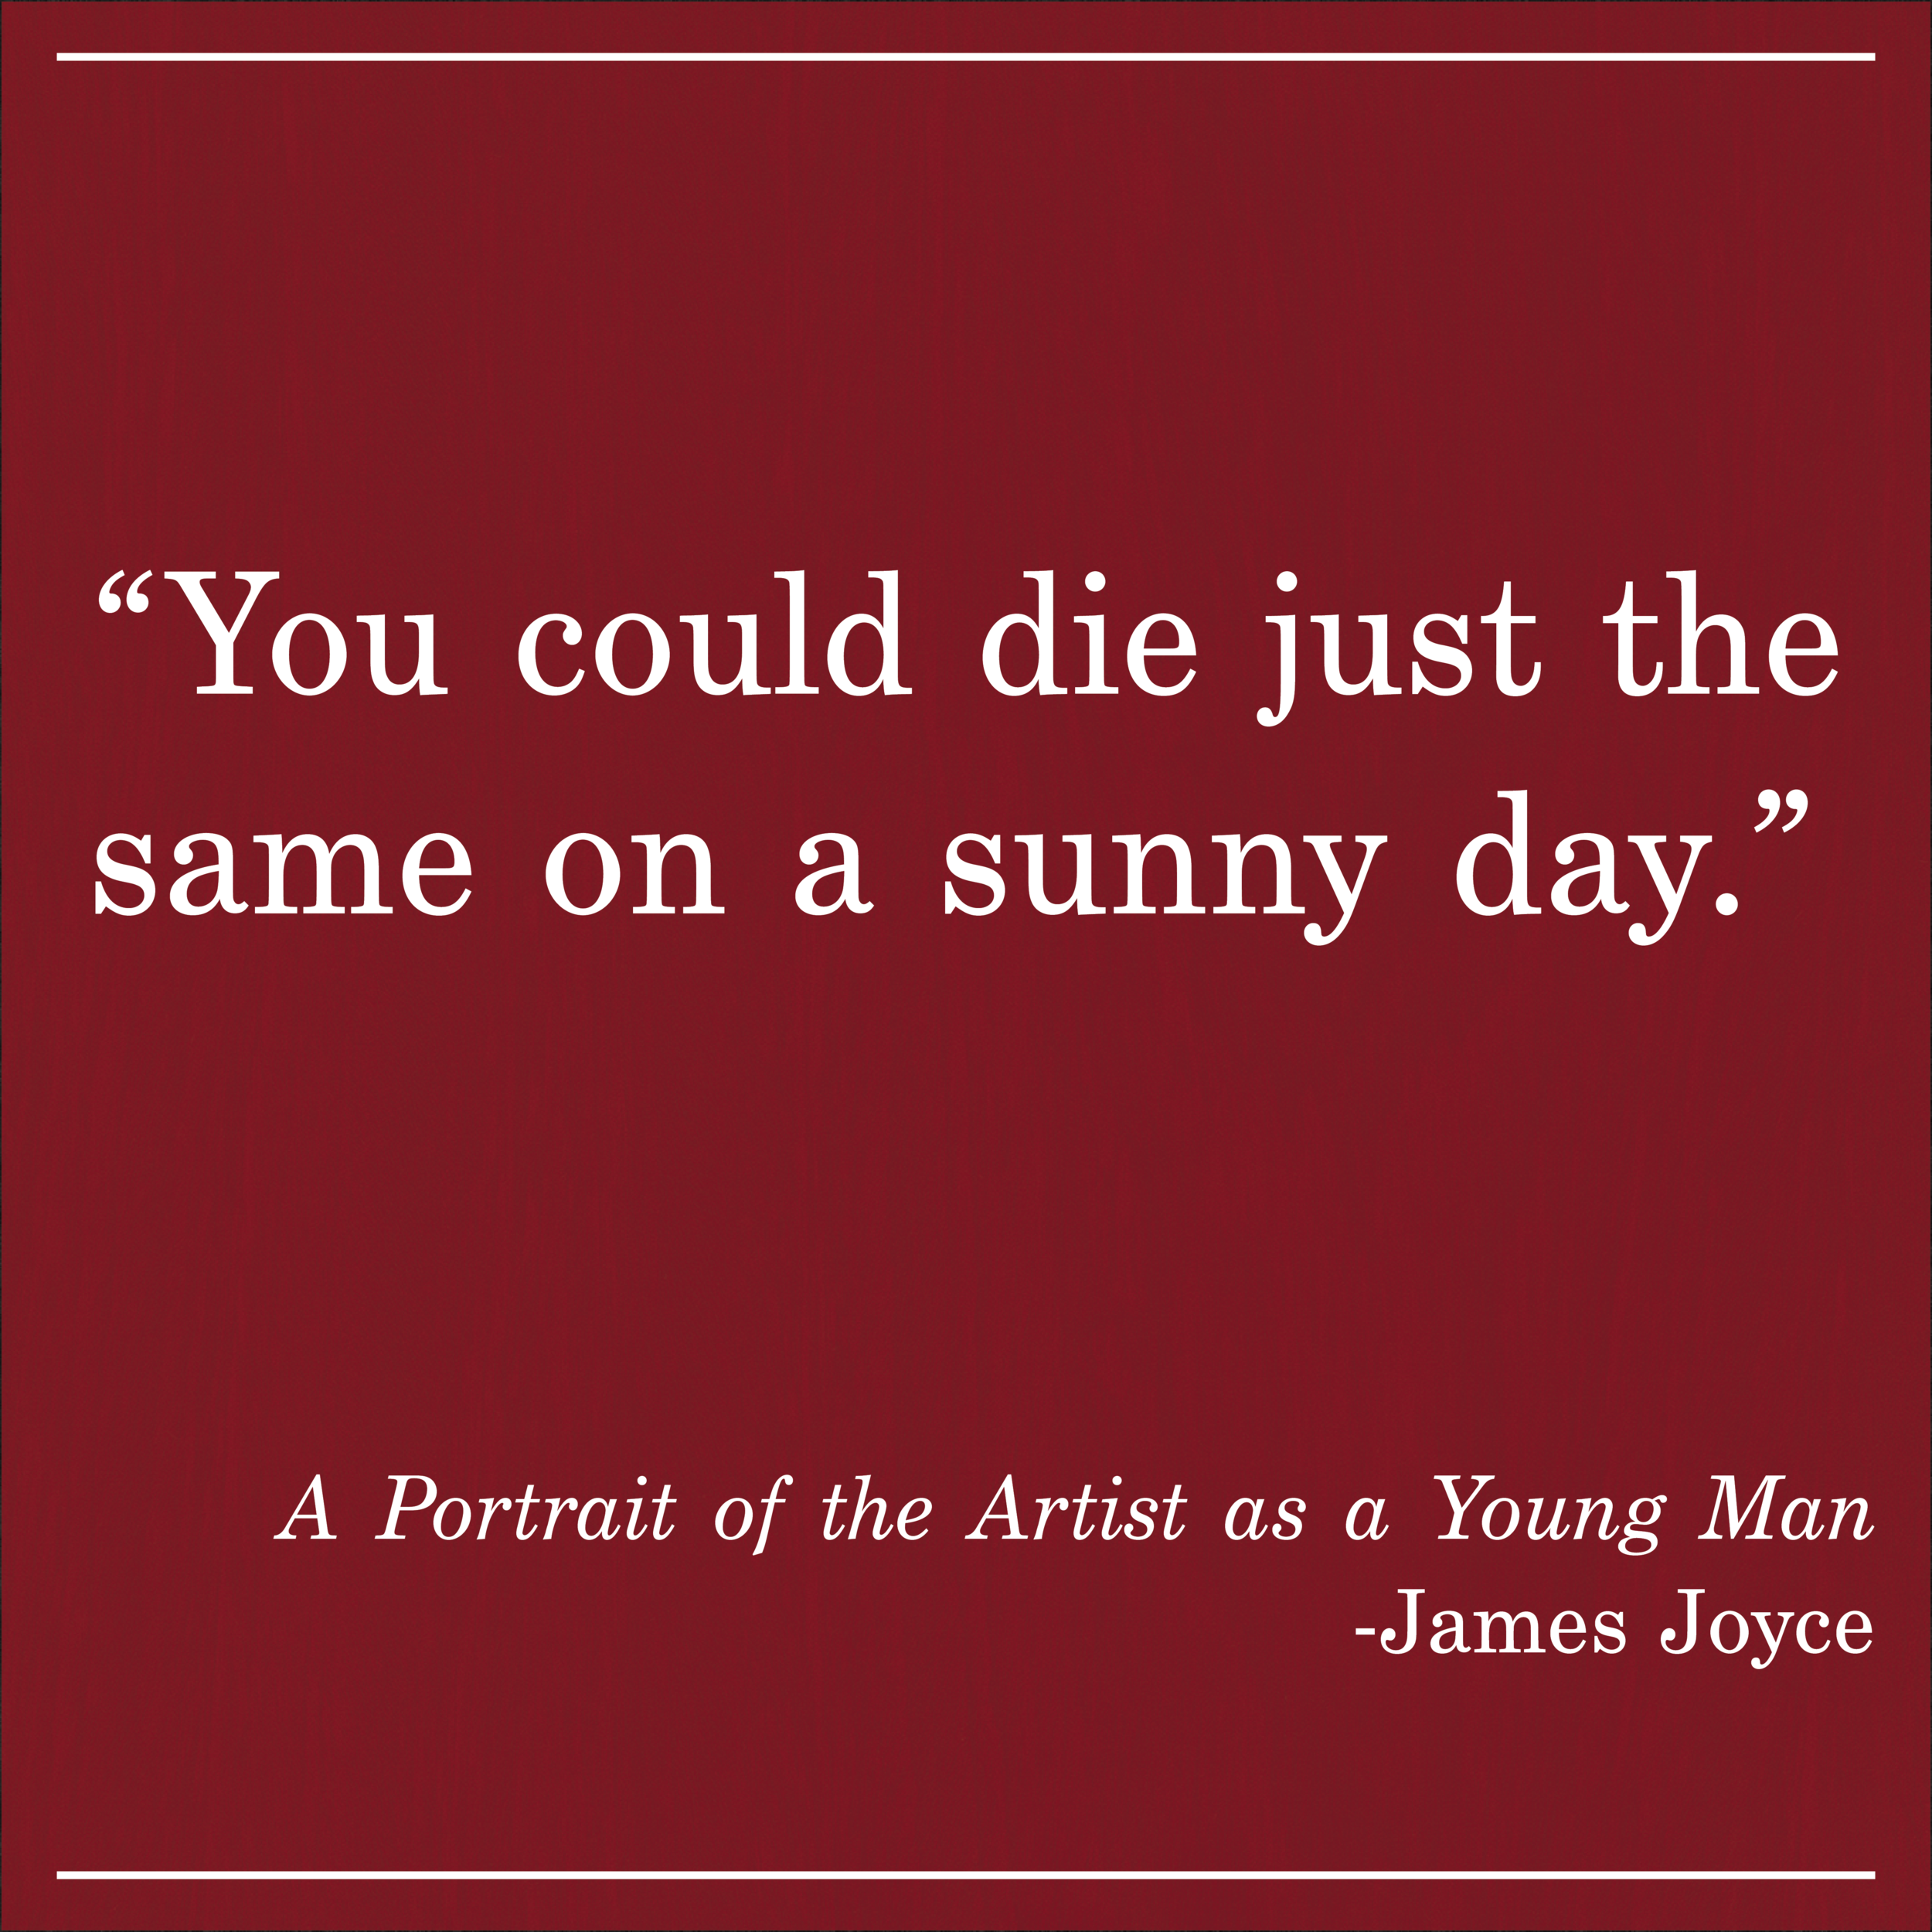 Daily Quote A Portrait of the Artist as a Young Man by James Joyce